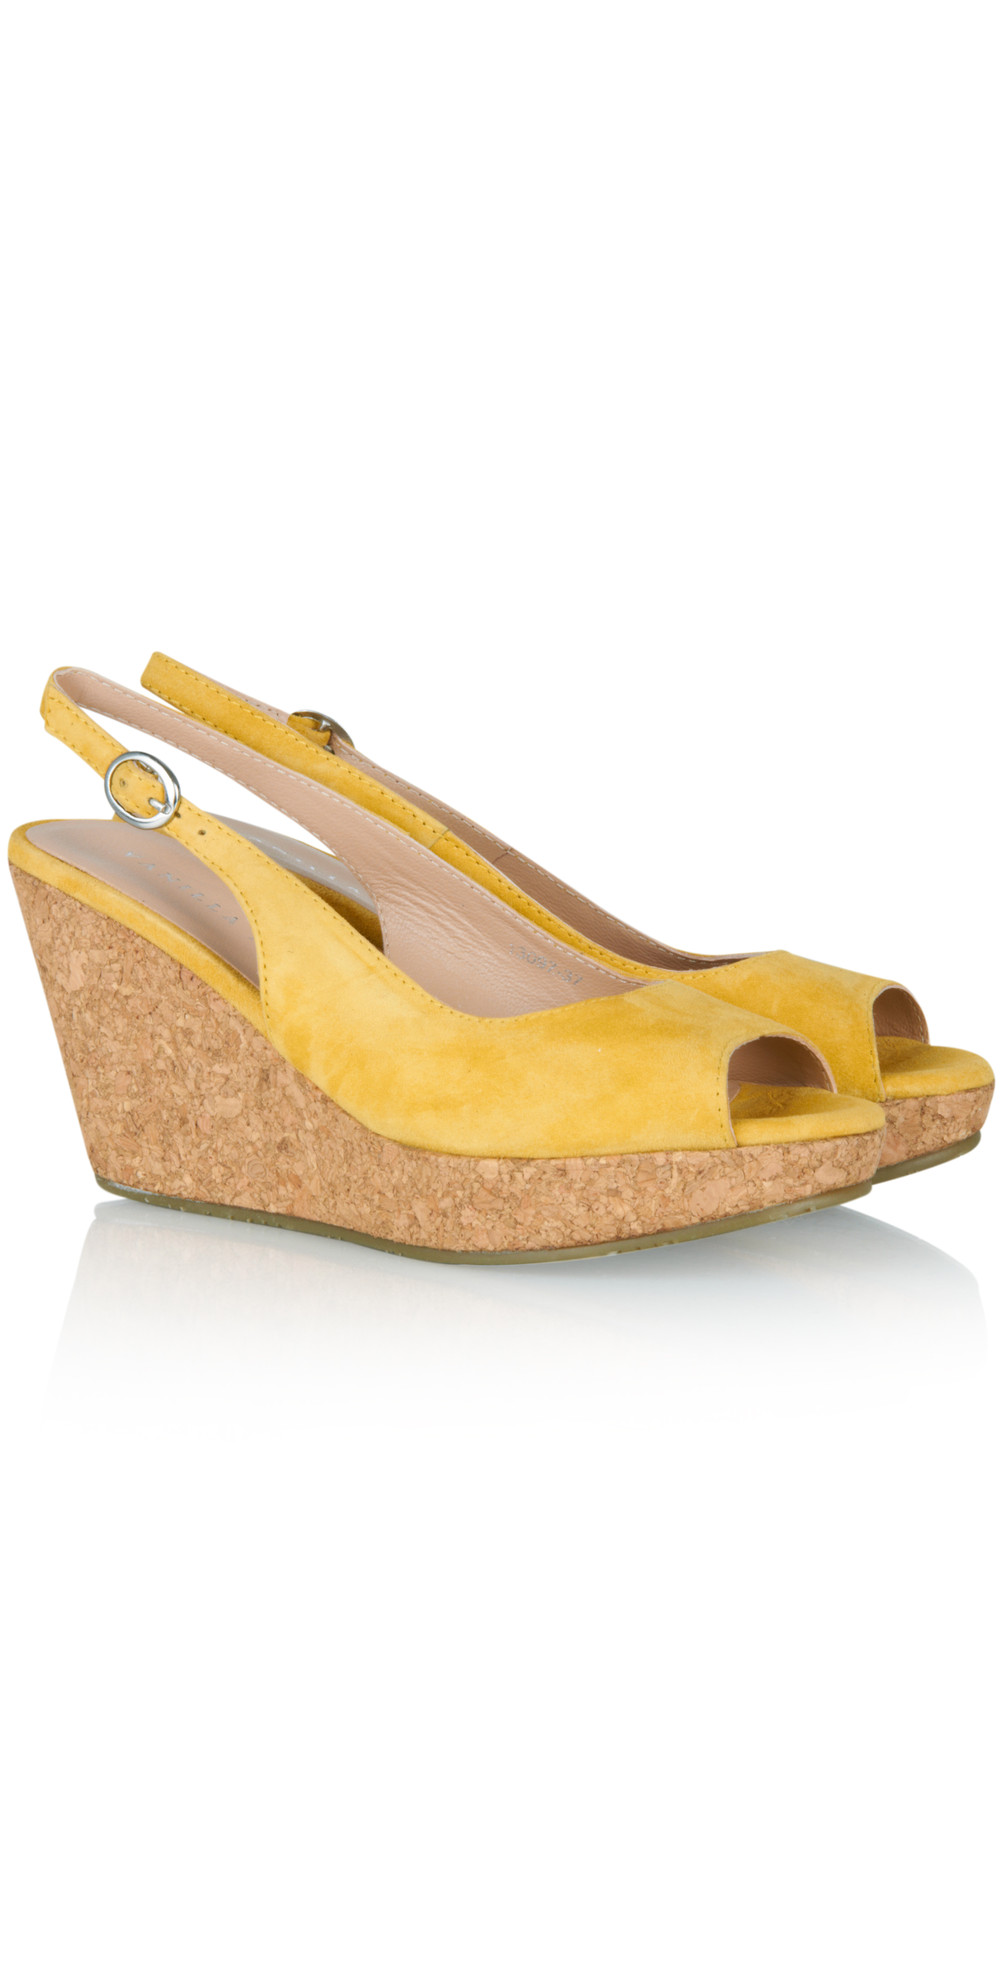 vanilla moon shoes suede wedge in yellow